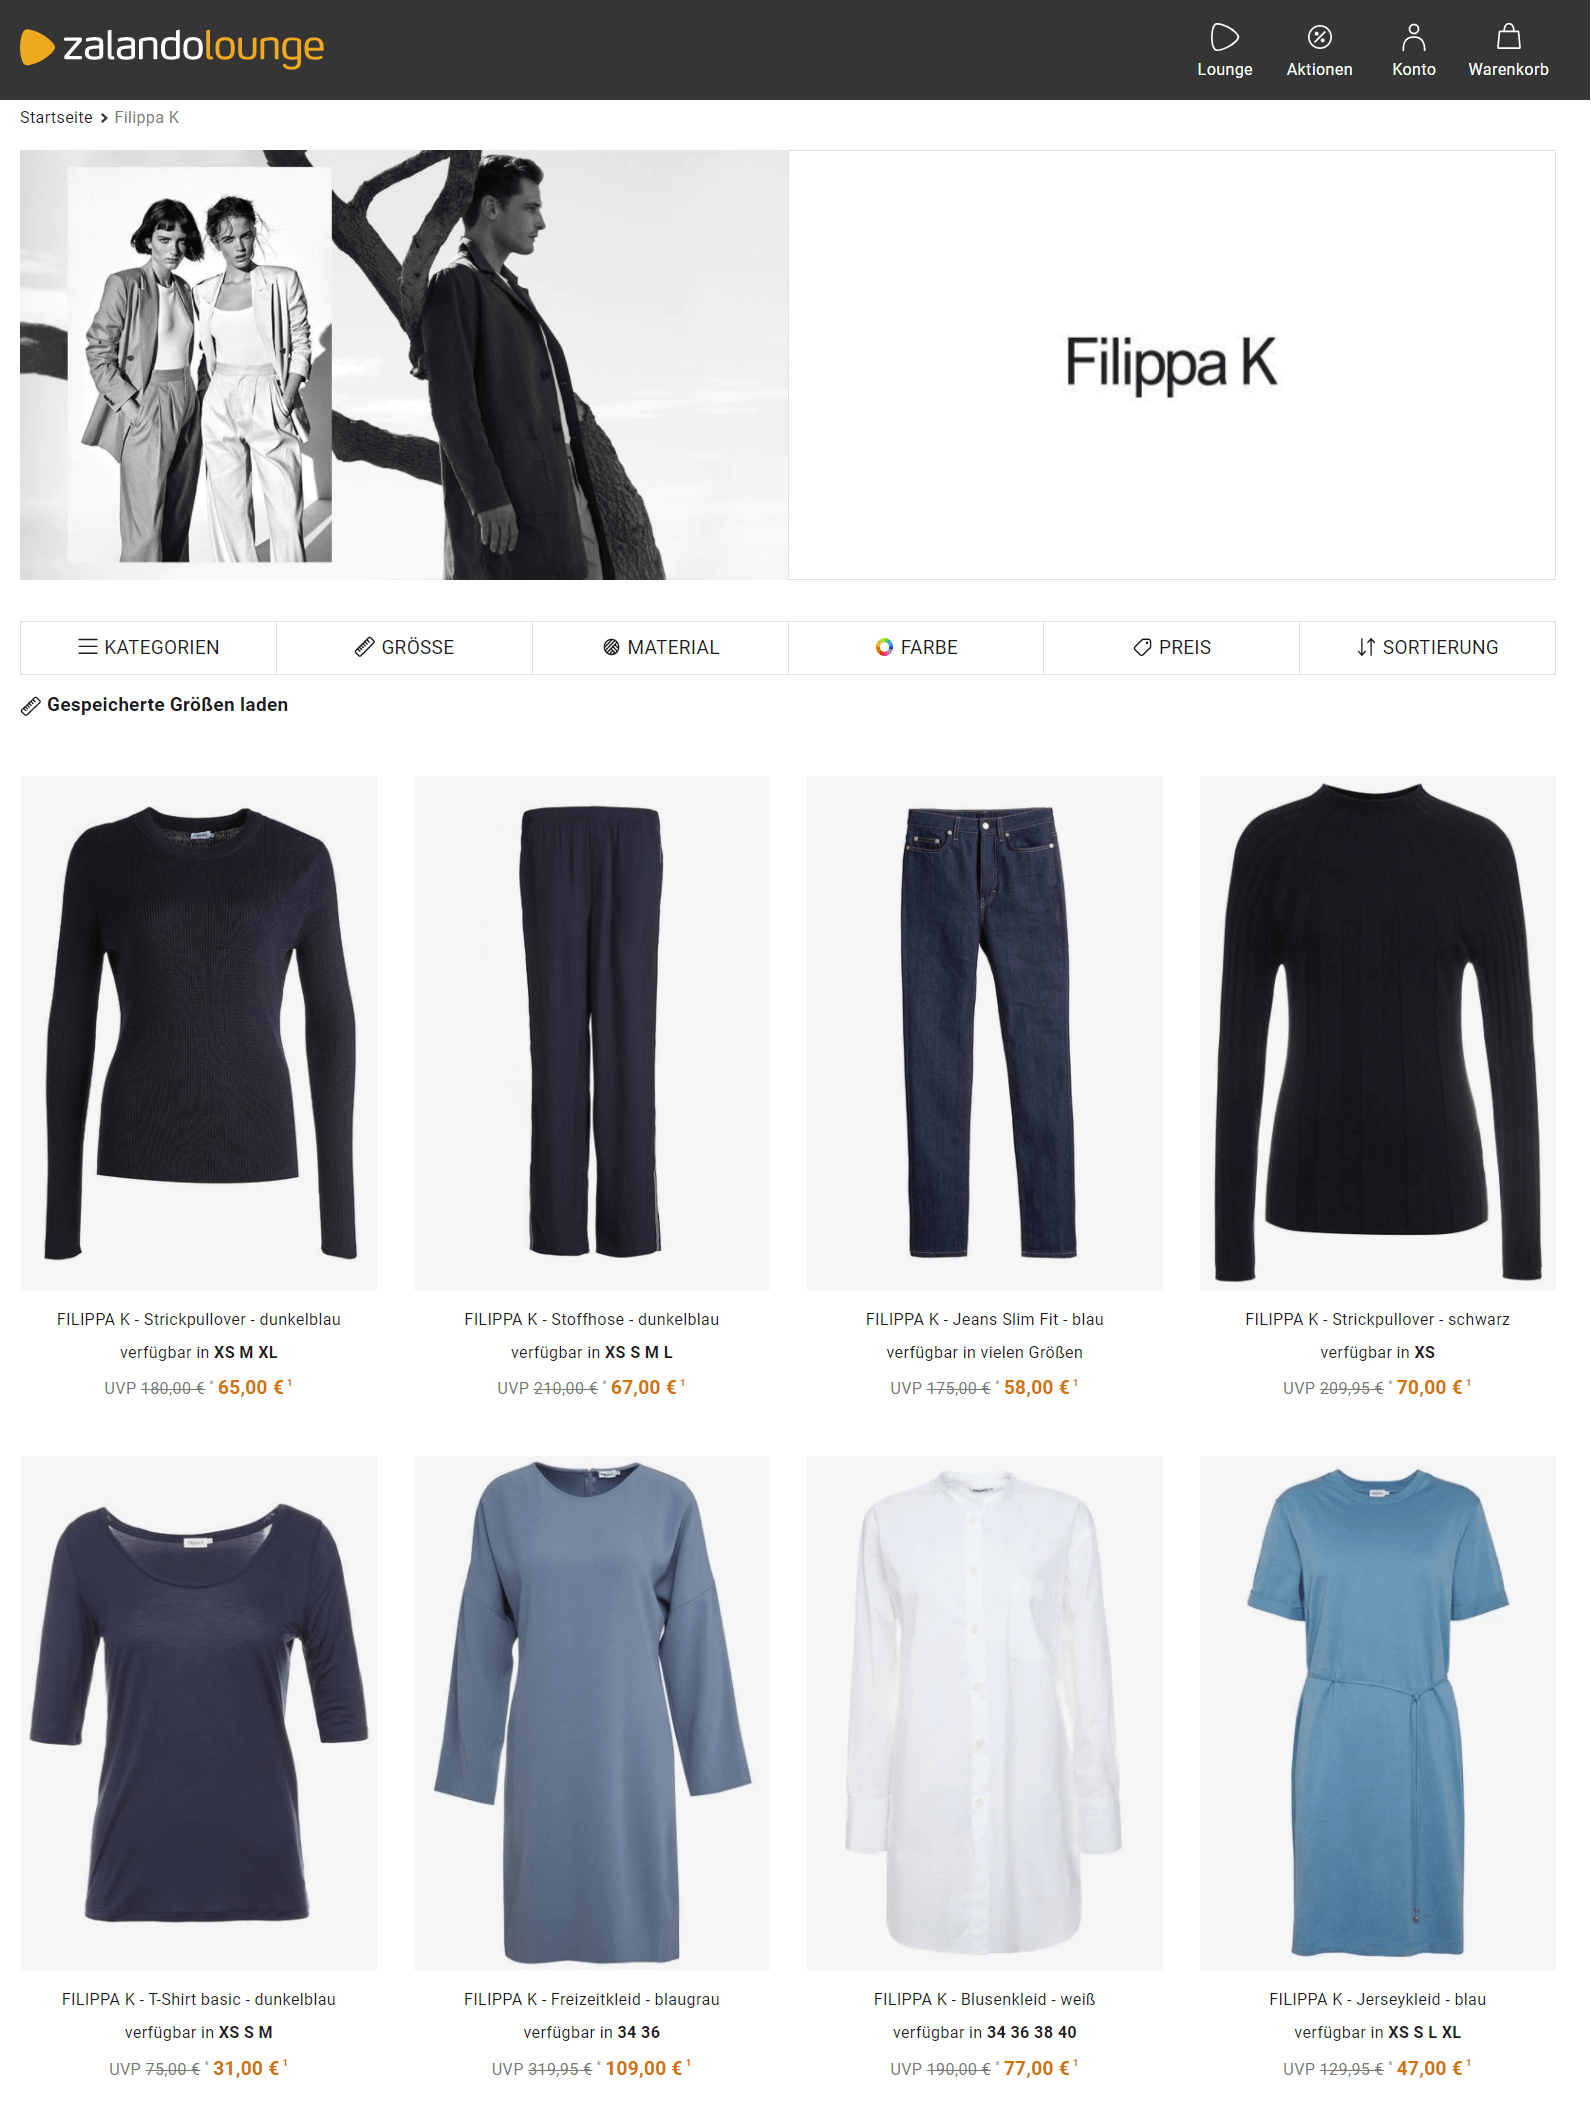 Filippa K Sale Zalando Lounge